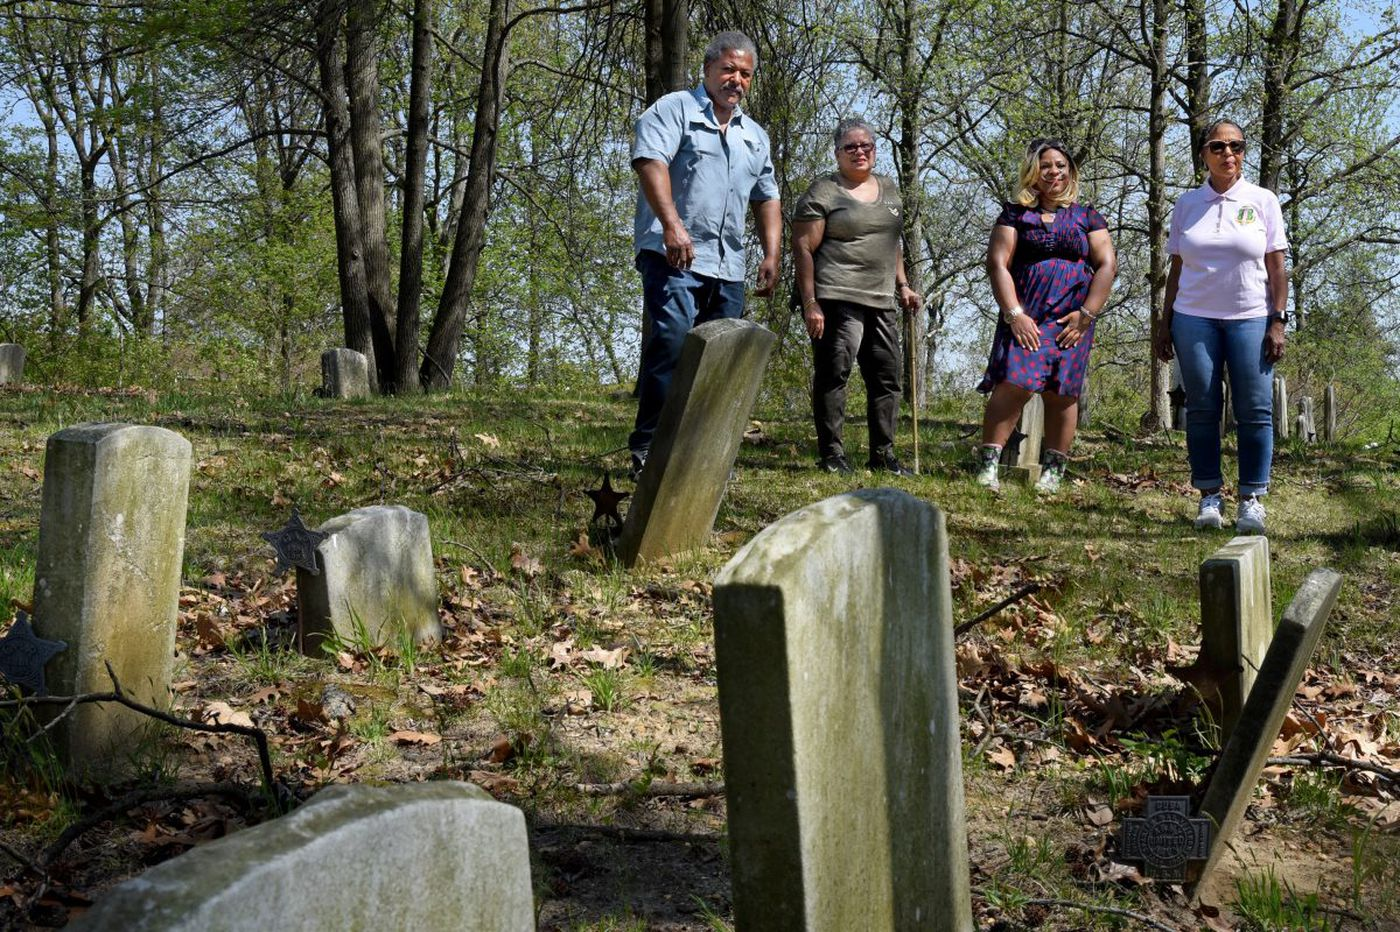 South Jersey cemetery for black Civil War veterans has fallen into disrepair; historic site is on endangered list